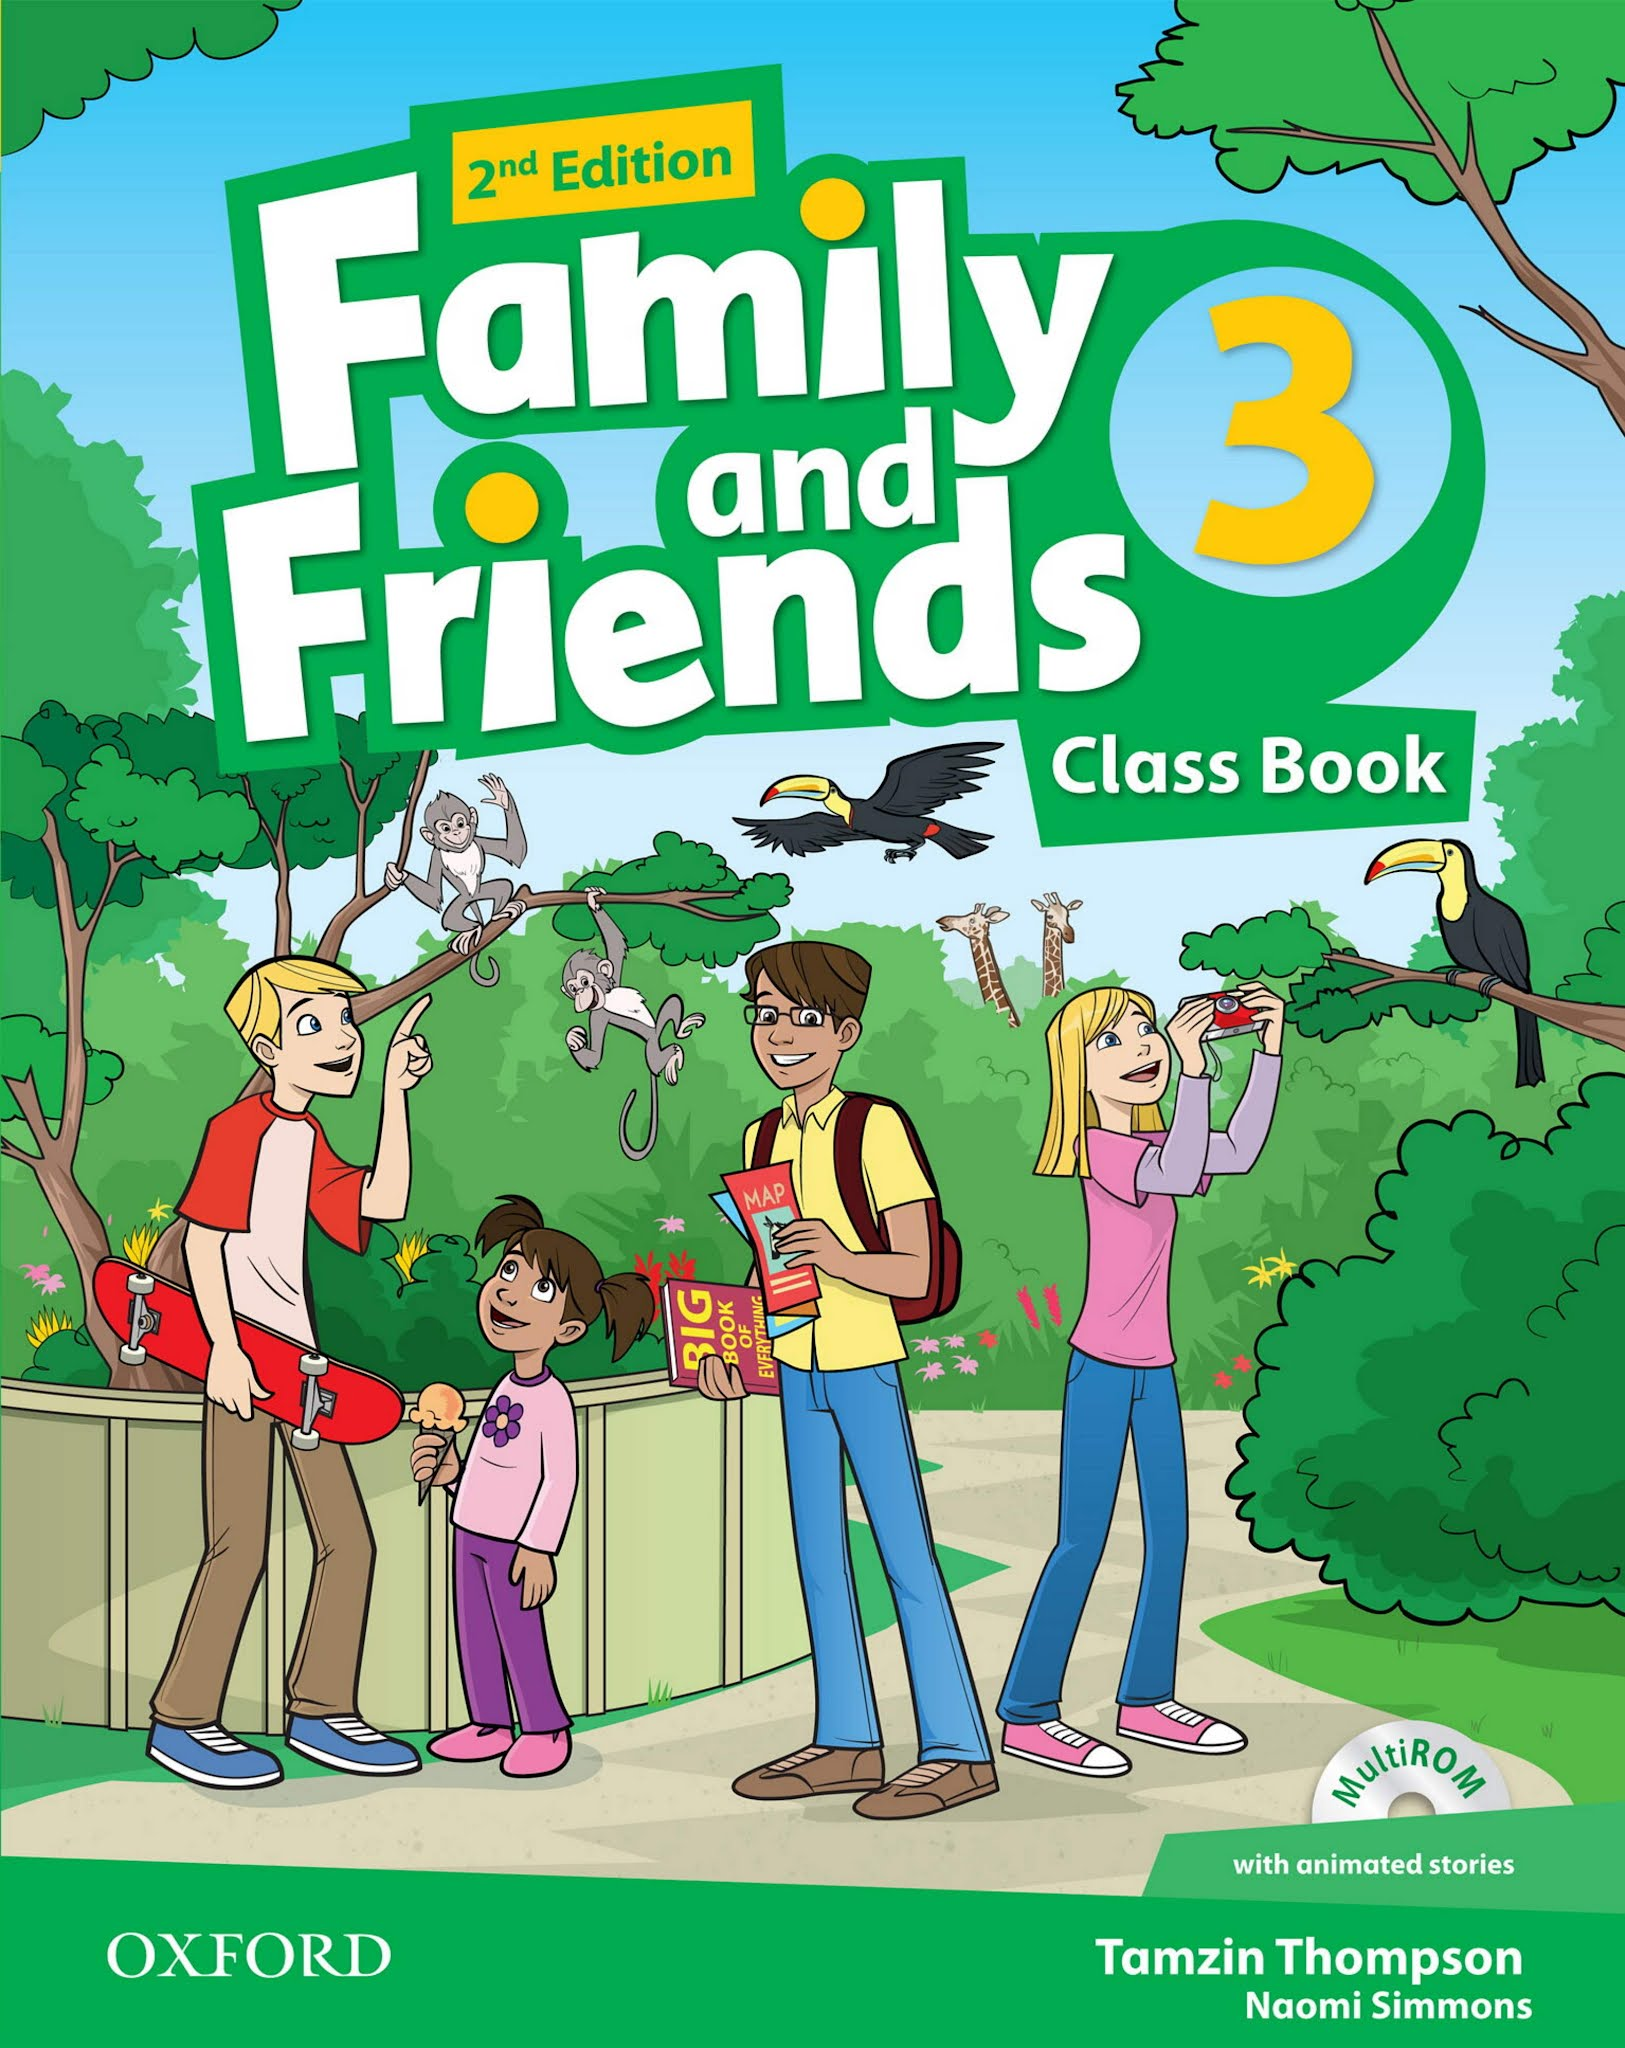 family and friends 3 student book pdf download | Family and Friends 3 2nd (second) Edition pdf Free download | Family and Friends 3 PDF